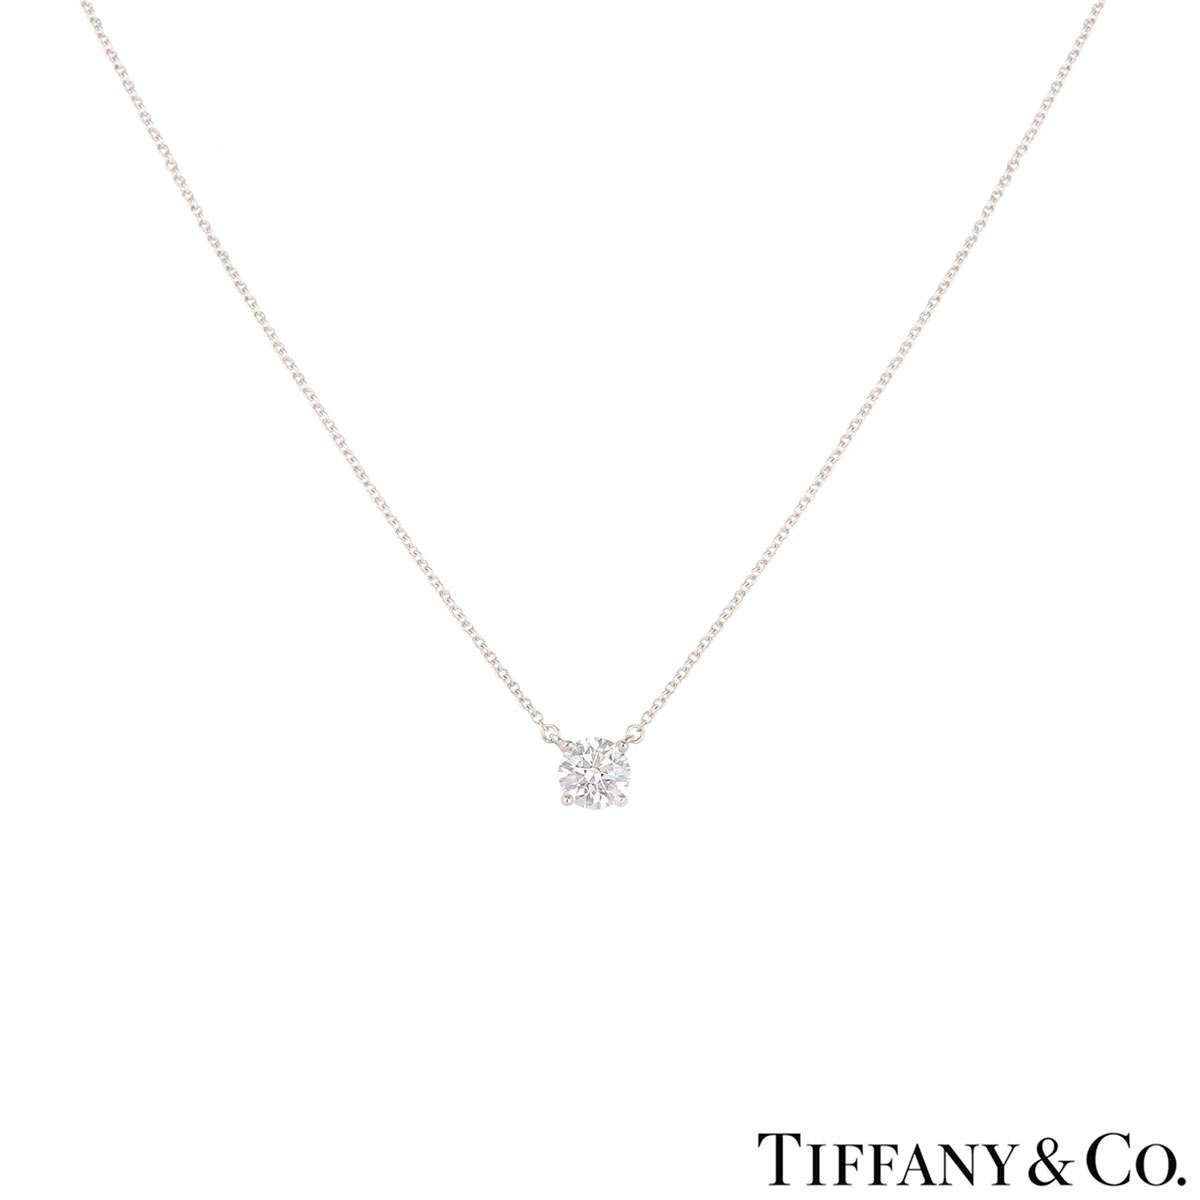 Tiffany & Co. Platinum Diamond Pendant 0.94ct E/VVS2